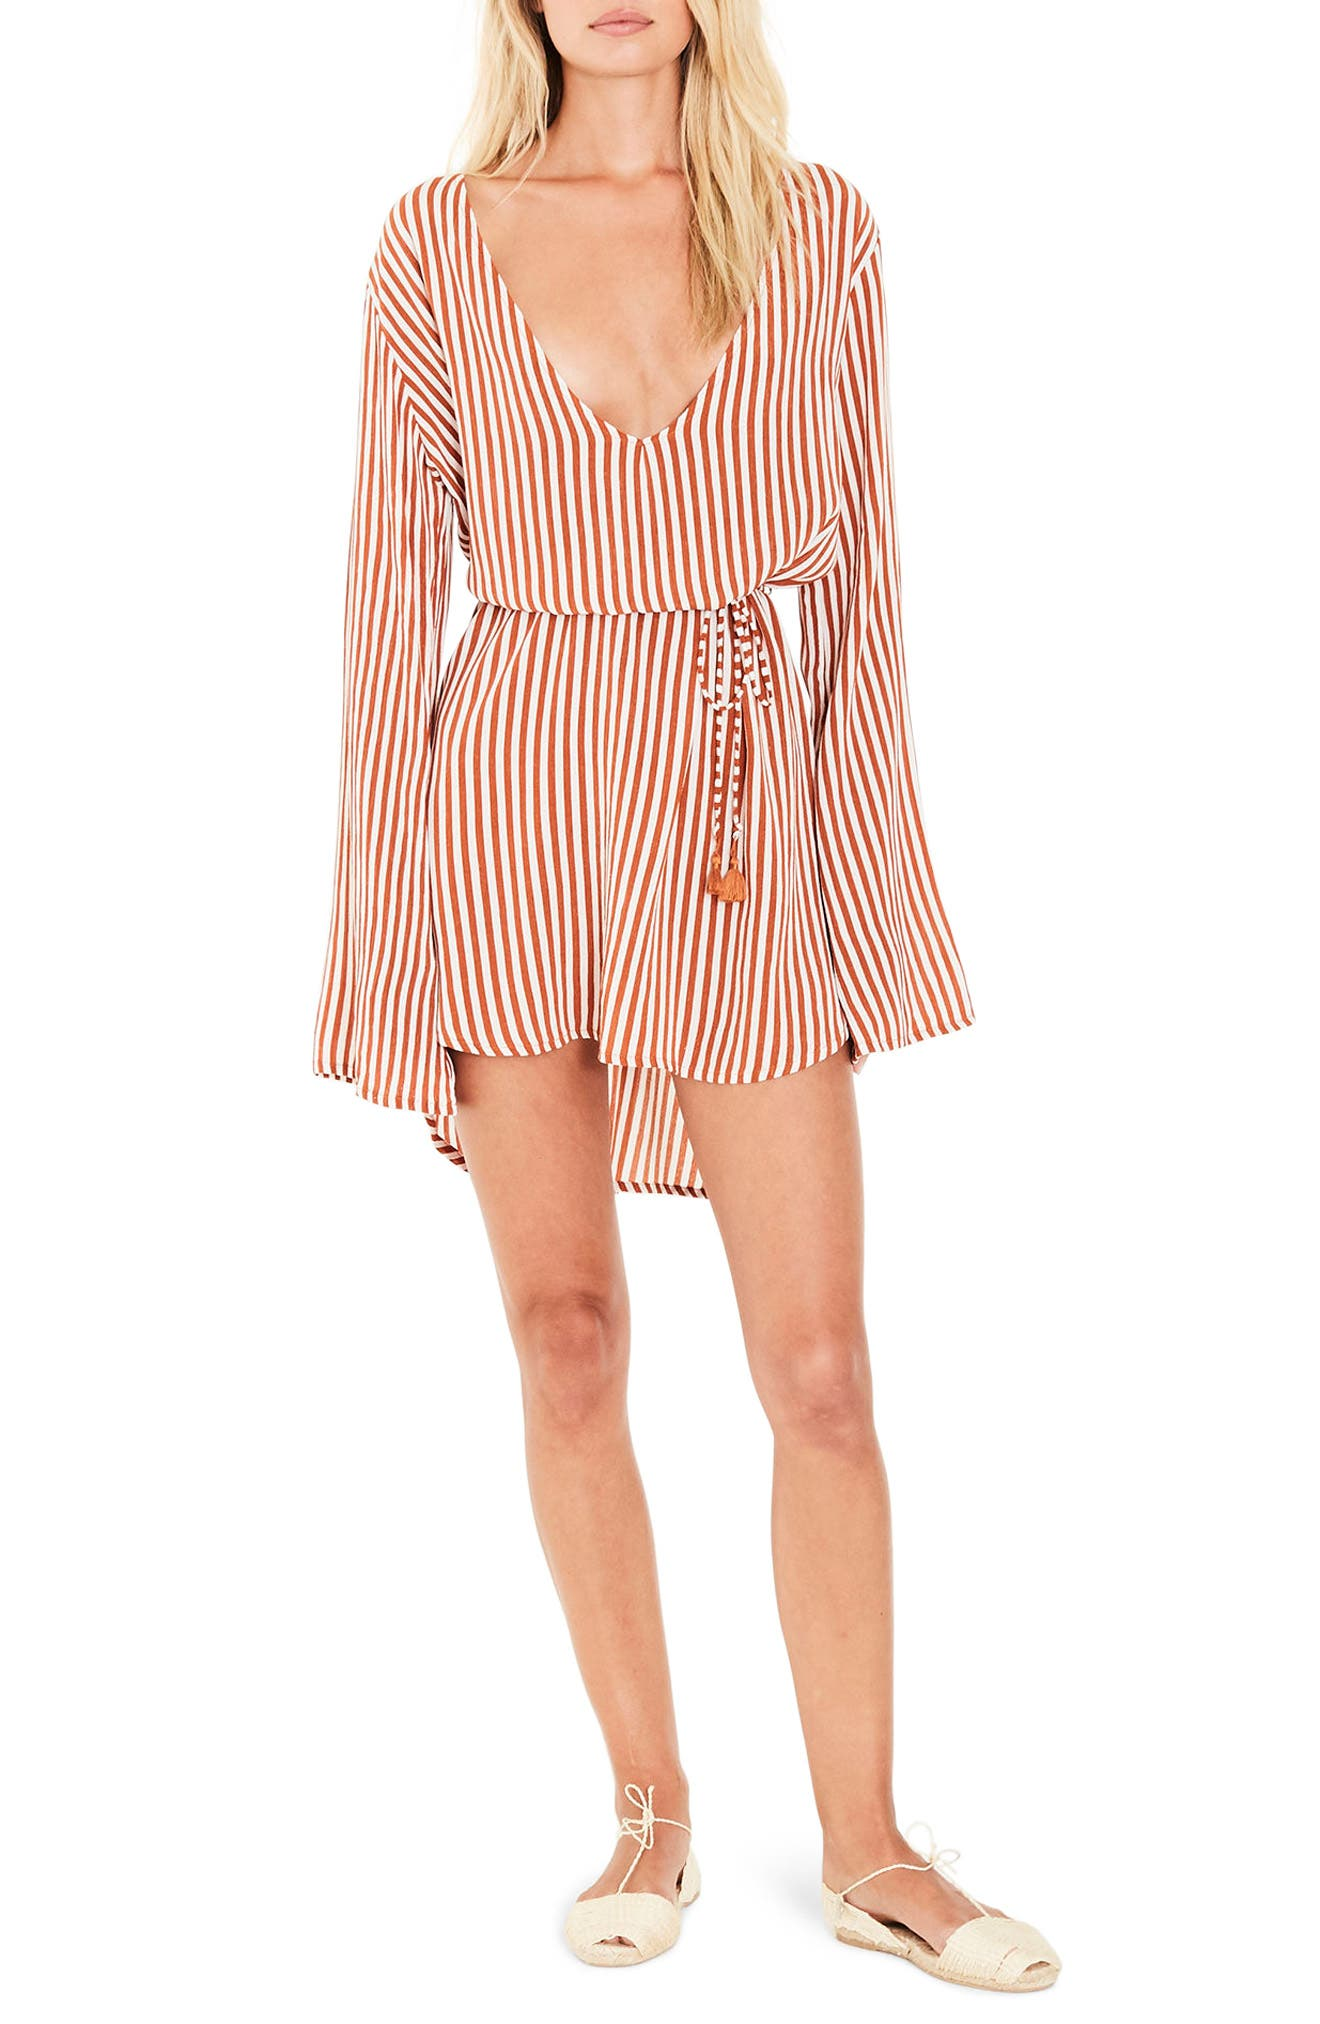 FAITHFULL THE BRAND Apart Stripe Dress